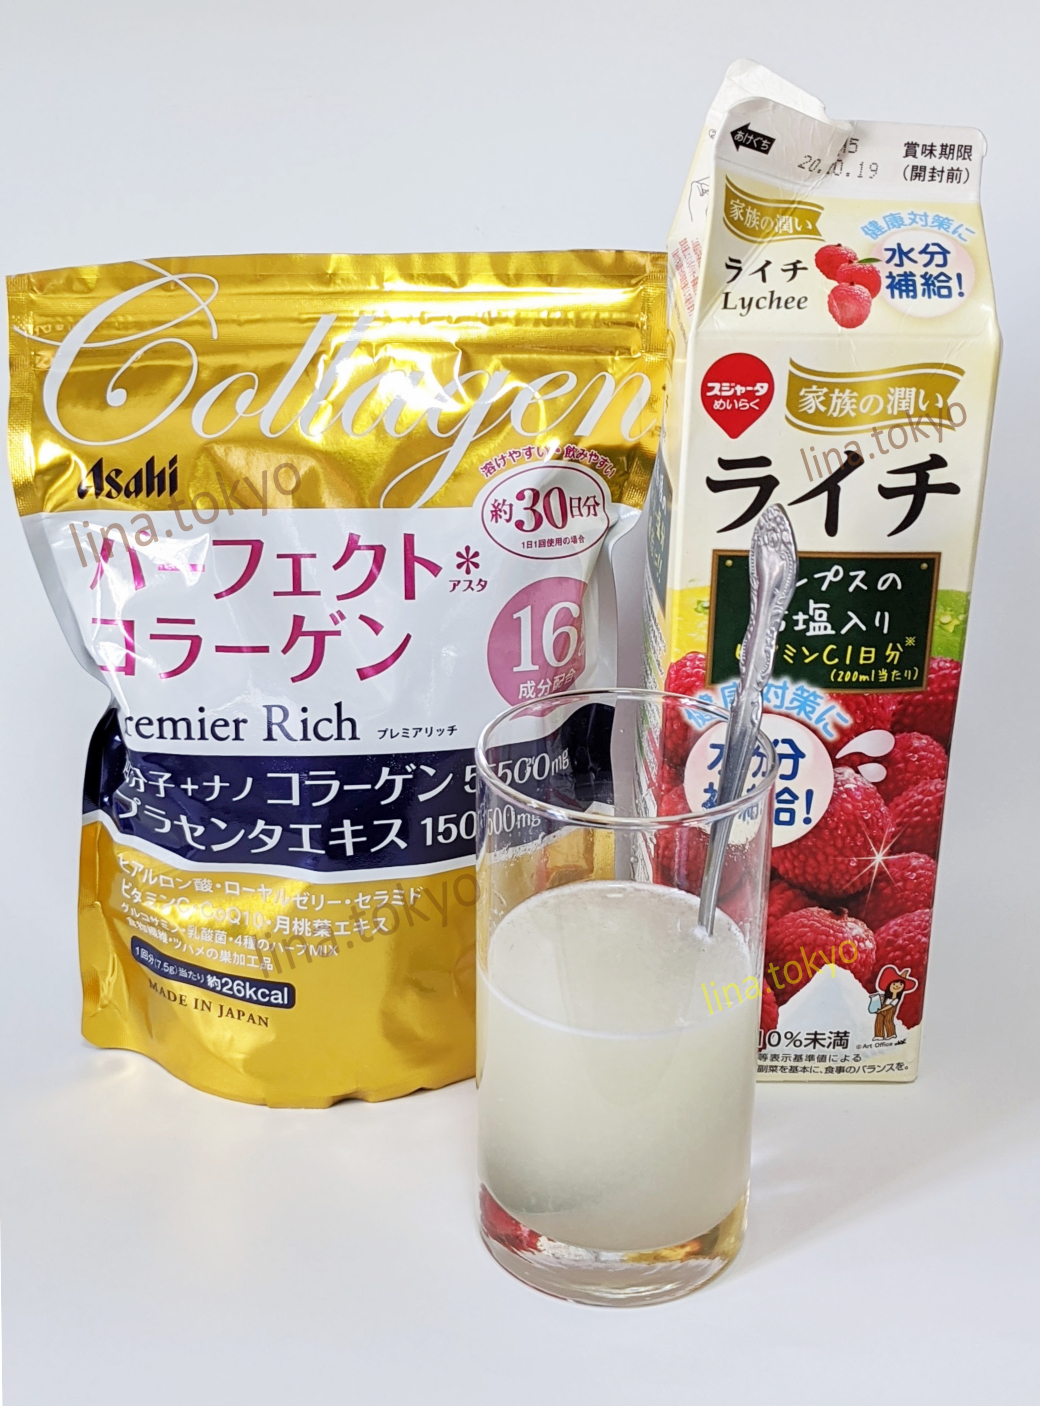 A10018-Asahi Collagen premier rich 50 days